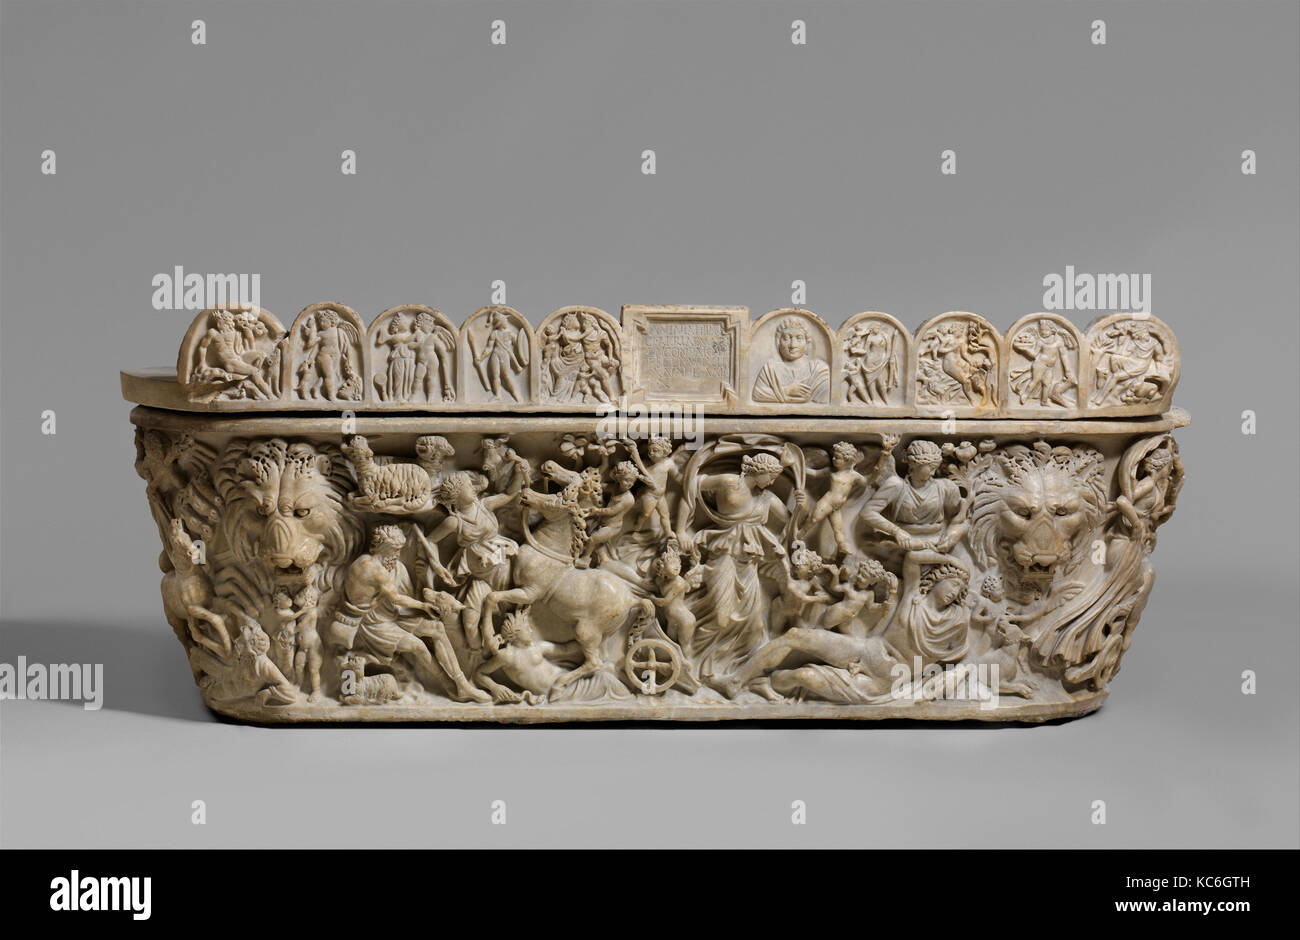 Marble sarcophagus with the myth of Selene and Endymion, early 3rd century A.D - Stock Image